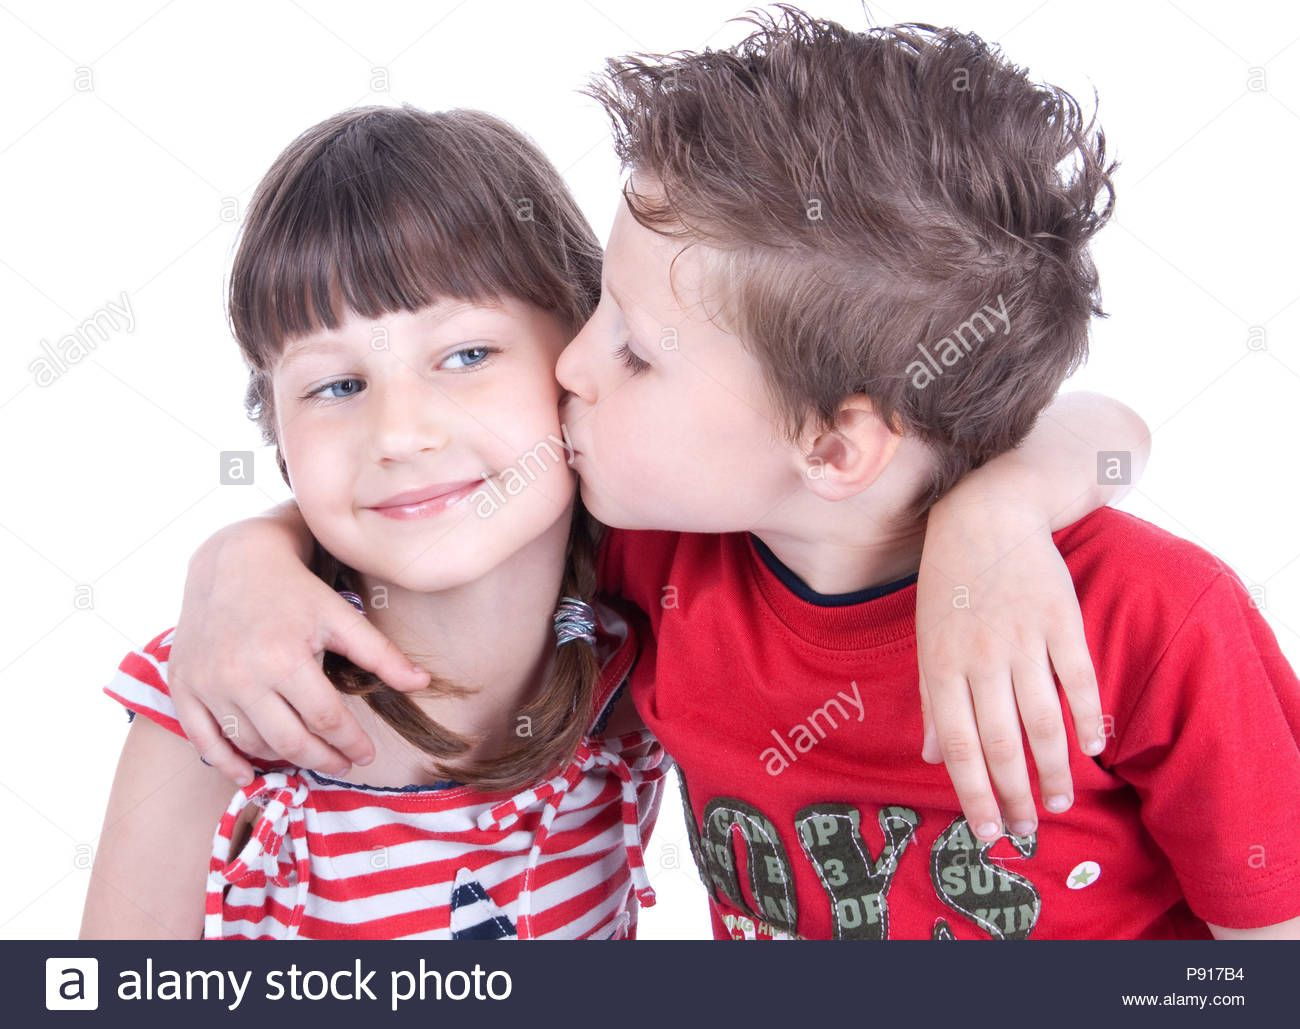 Download This Stock Image Cute Boy Kissing A Nice Girl Studio